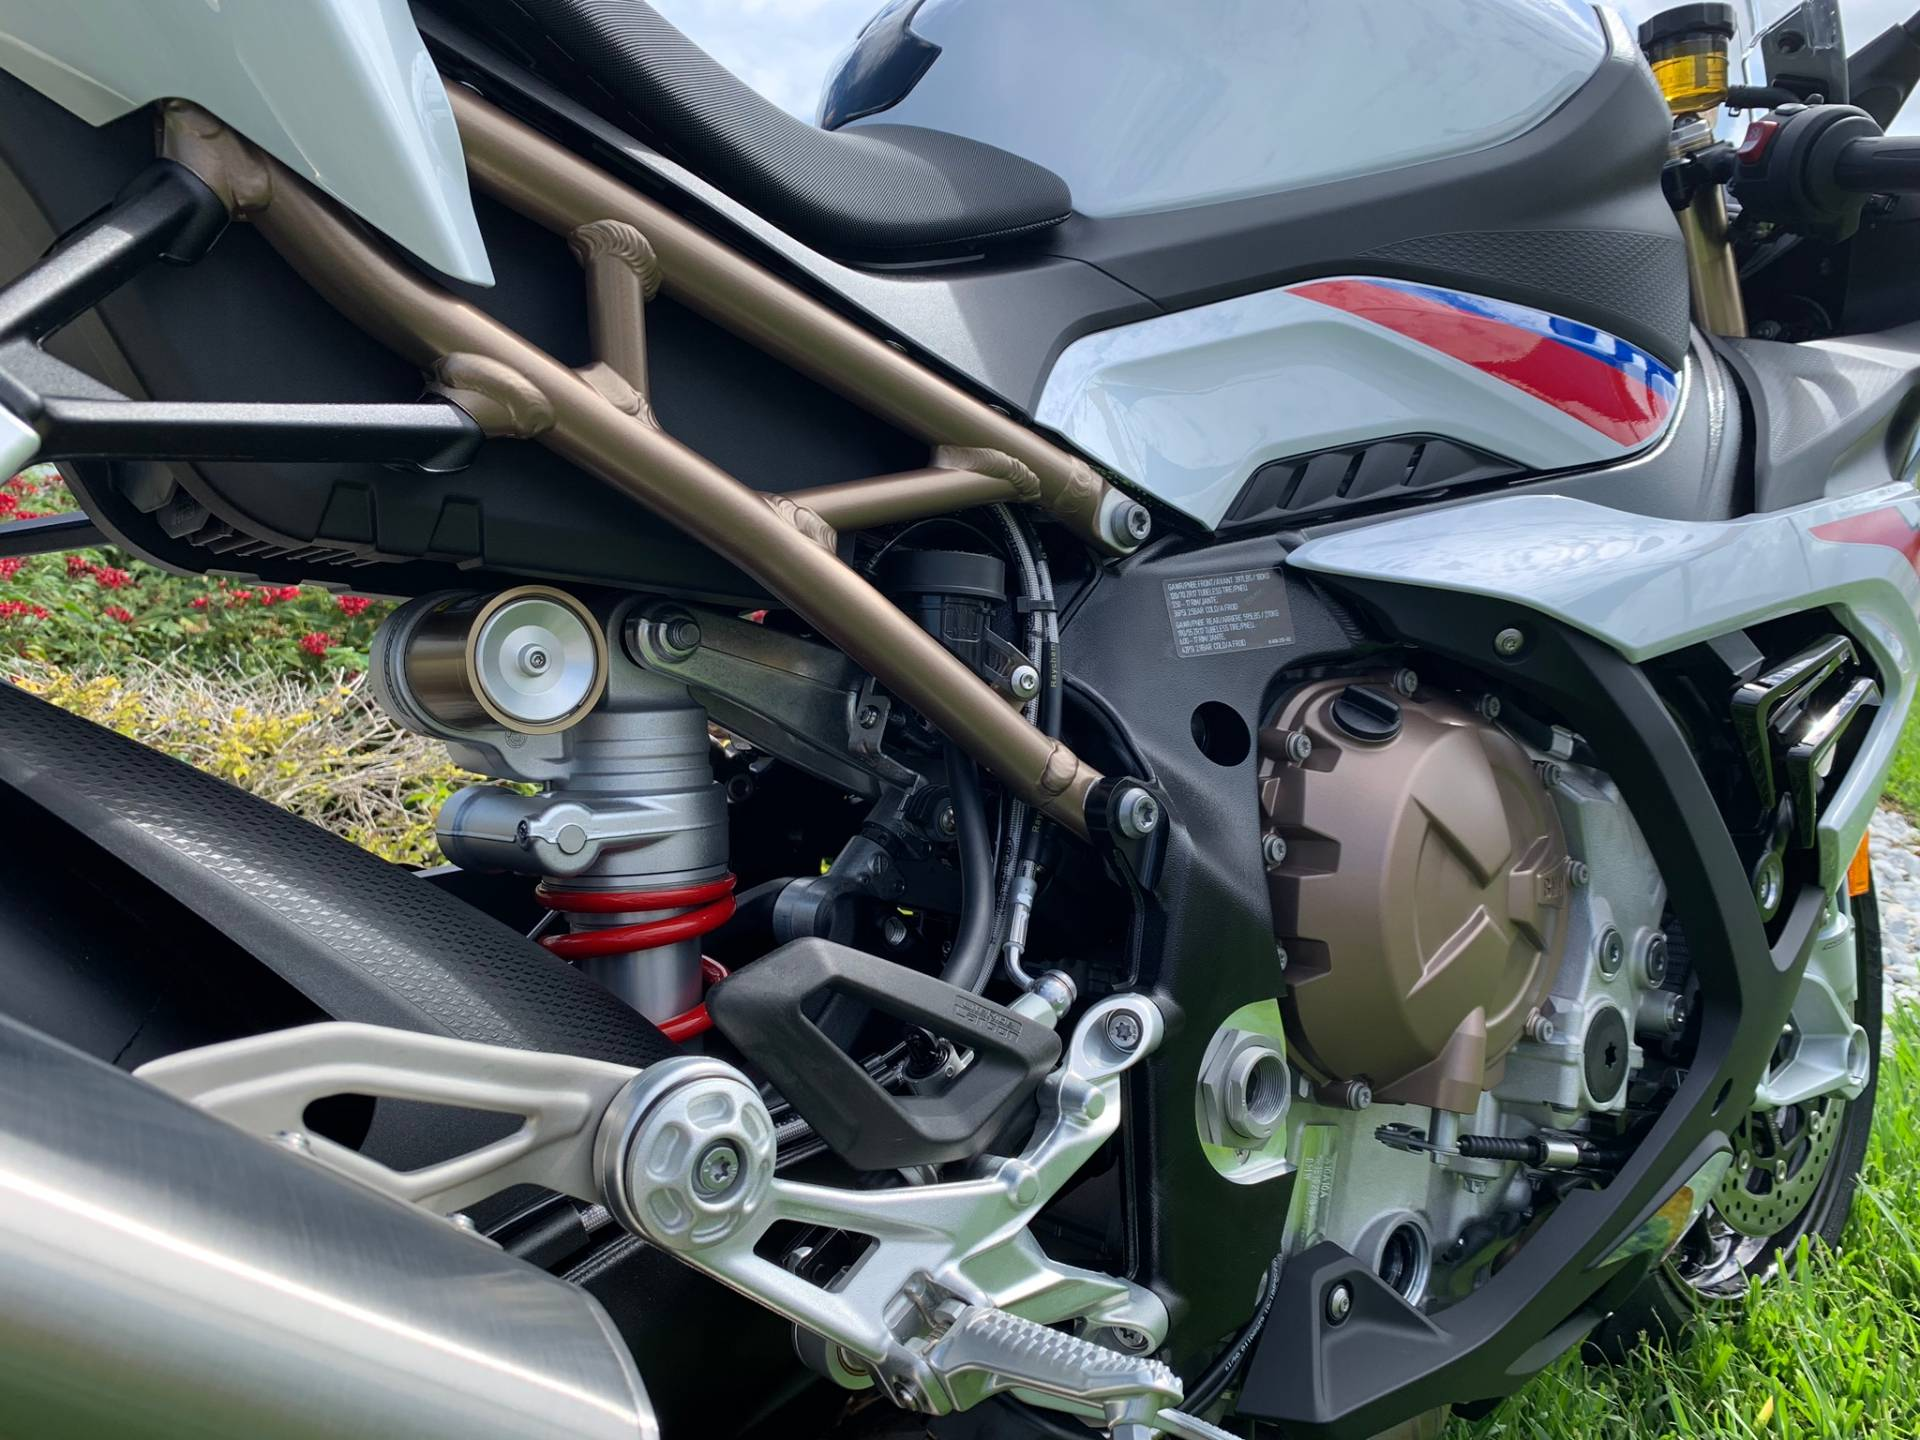 New 2020 BMW S 1000 RR for sale, BMW S 1000RR for sale, BMW Motorcycle S1000RR, new BMW RR, Sport. BMW Motorcycles of Miami, Motorcycles of Miami, Motorcycles Miami, New Motorcycles, Used Motorcycles, pre-owned. #BMWMotorcyclesOfMiami #MotorcyclesOfMiami #MotorcyclesMiami - Photo 18